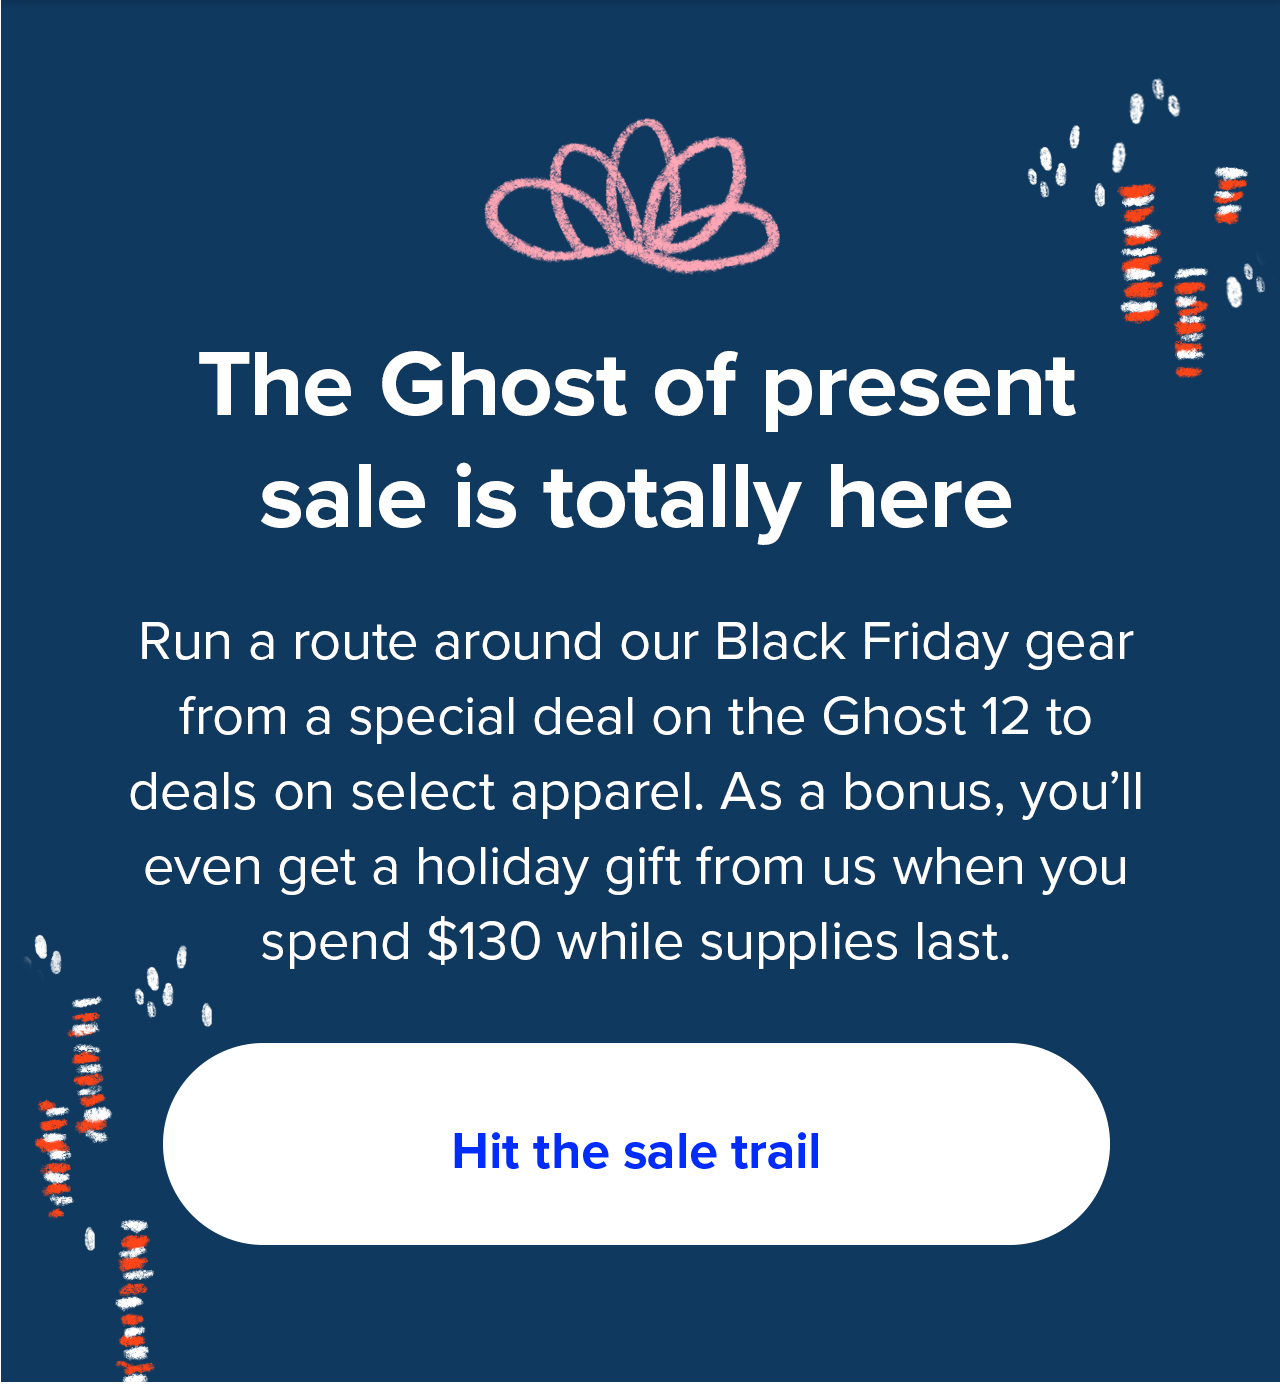 The Ghost of present sale is totally here   Run a route around our Black Friday gear from a special deal on the Ghost 12 to deals on select apparel. As a bonus, you'll even get a holiday gift from us when you spend $130 while supplies last.